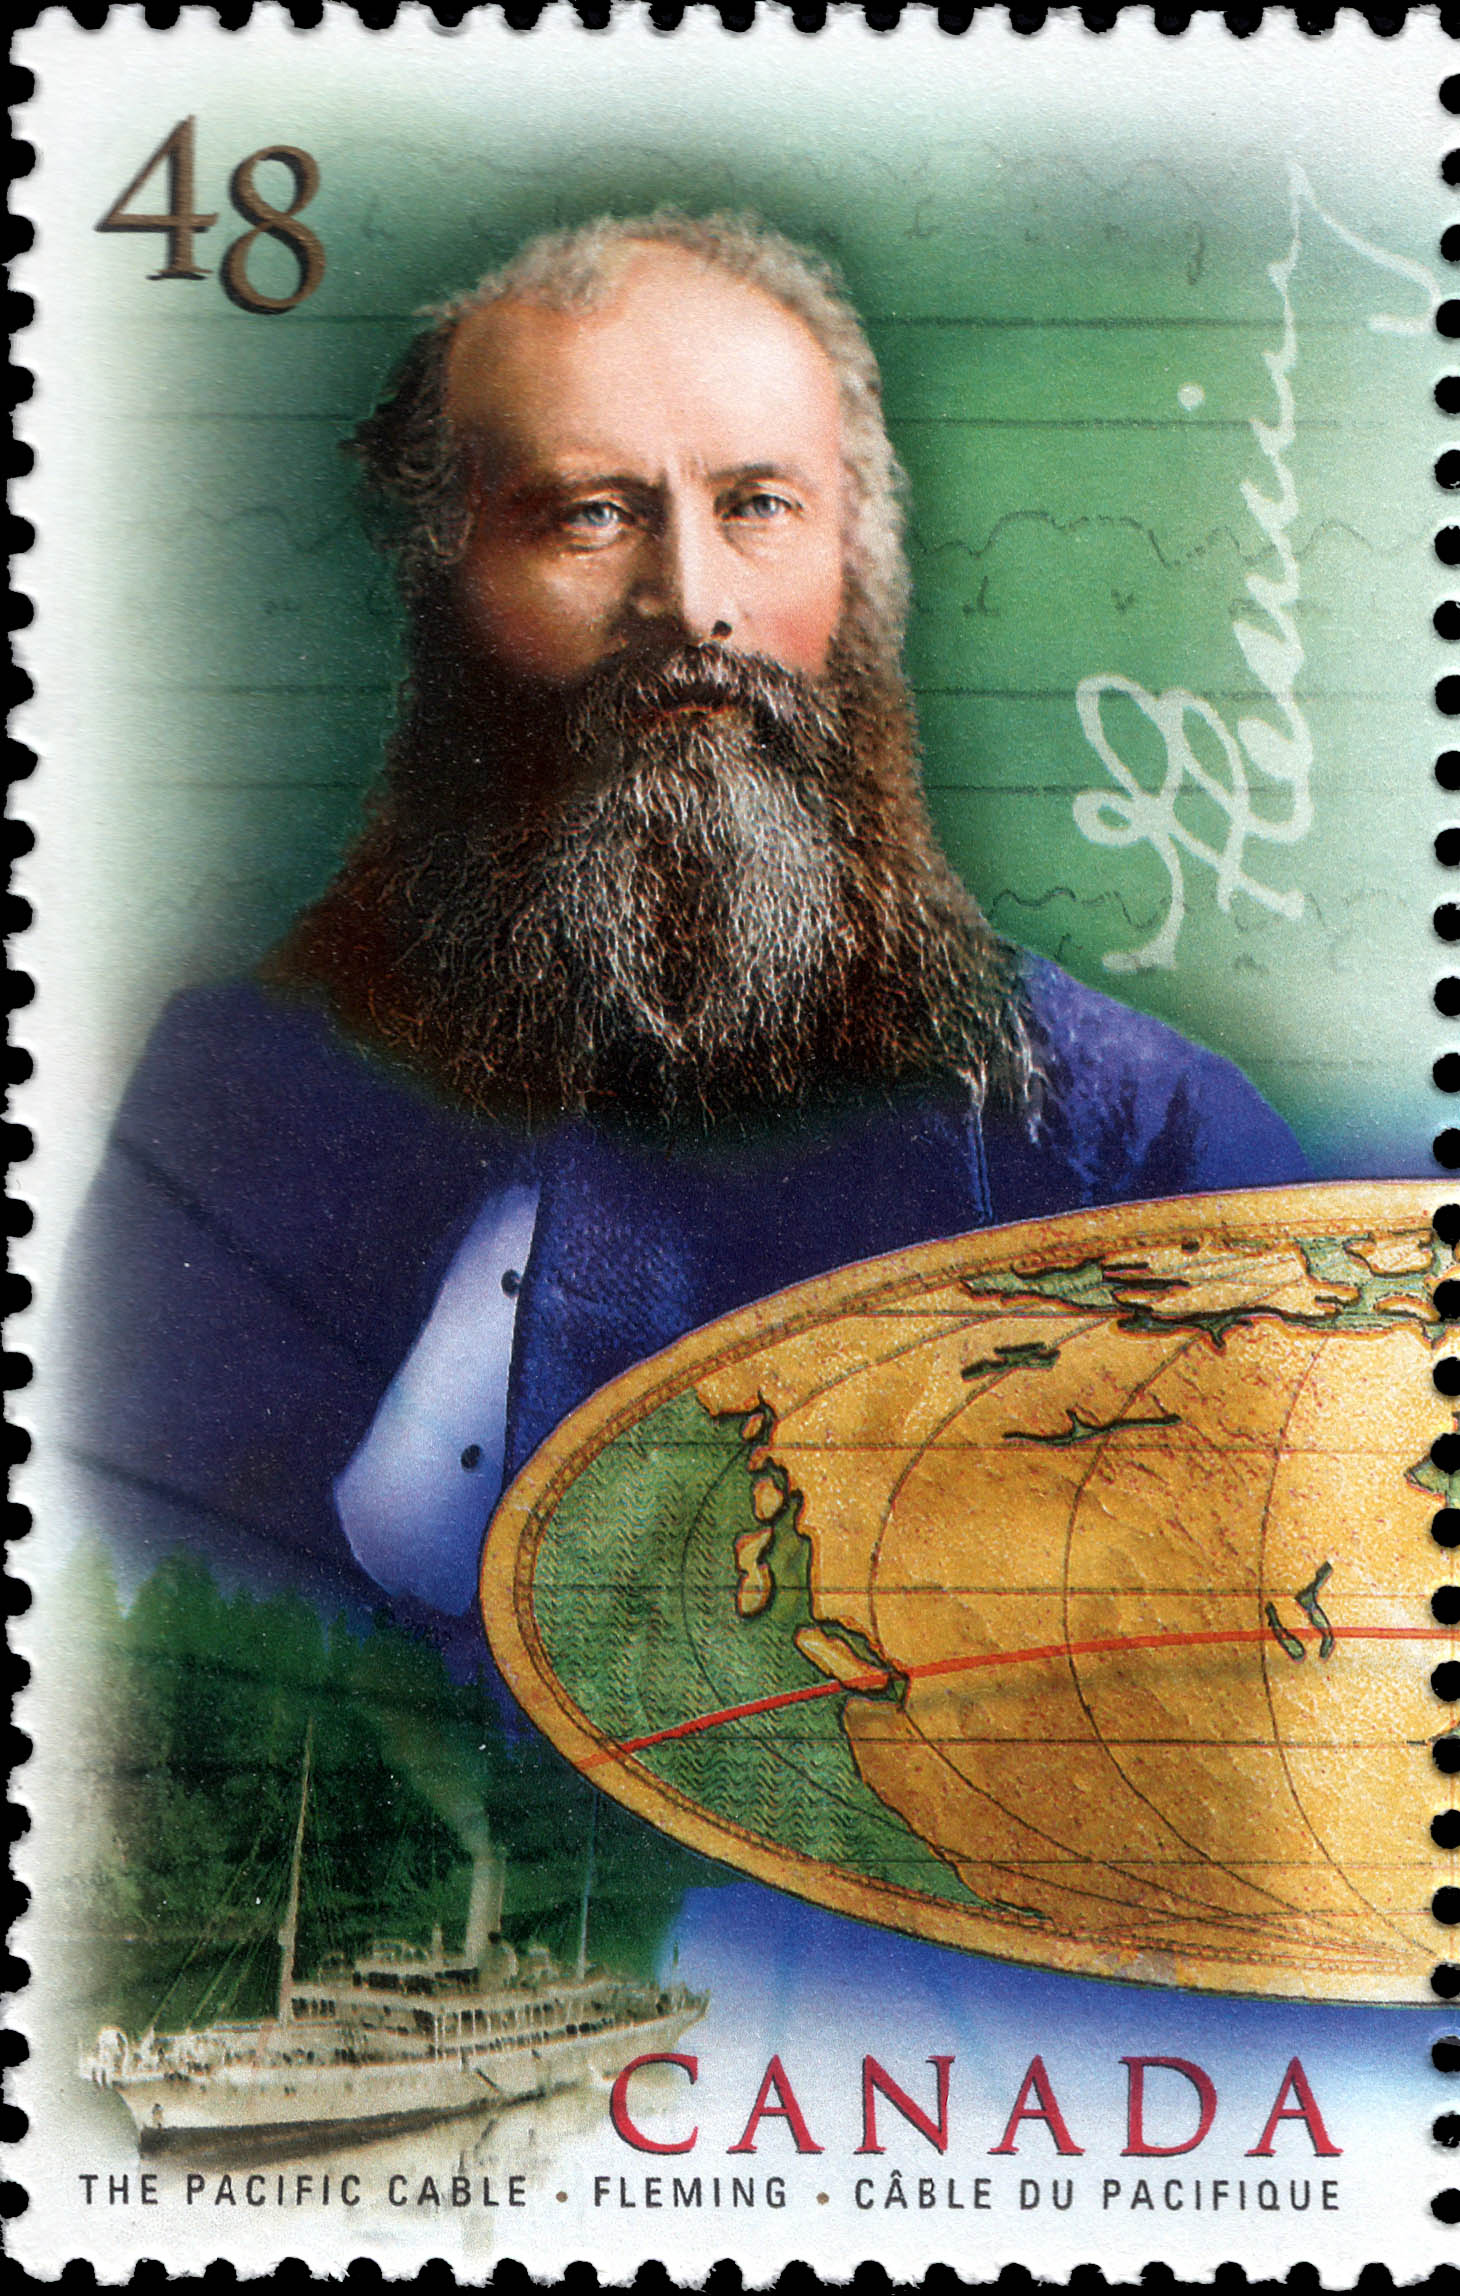 The Pacific Cable, Fleming Canada Postage Stamp | Communication Technology